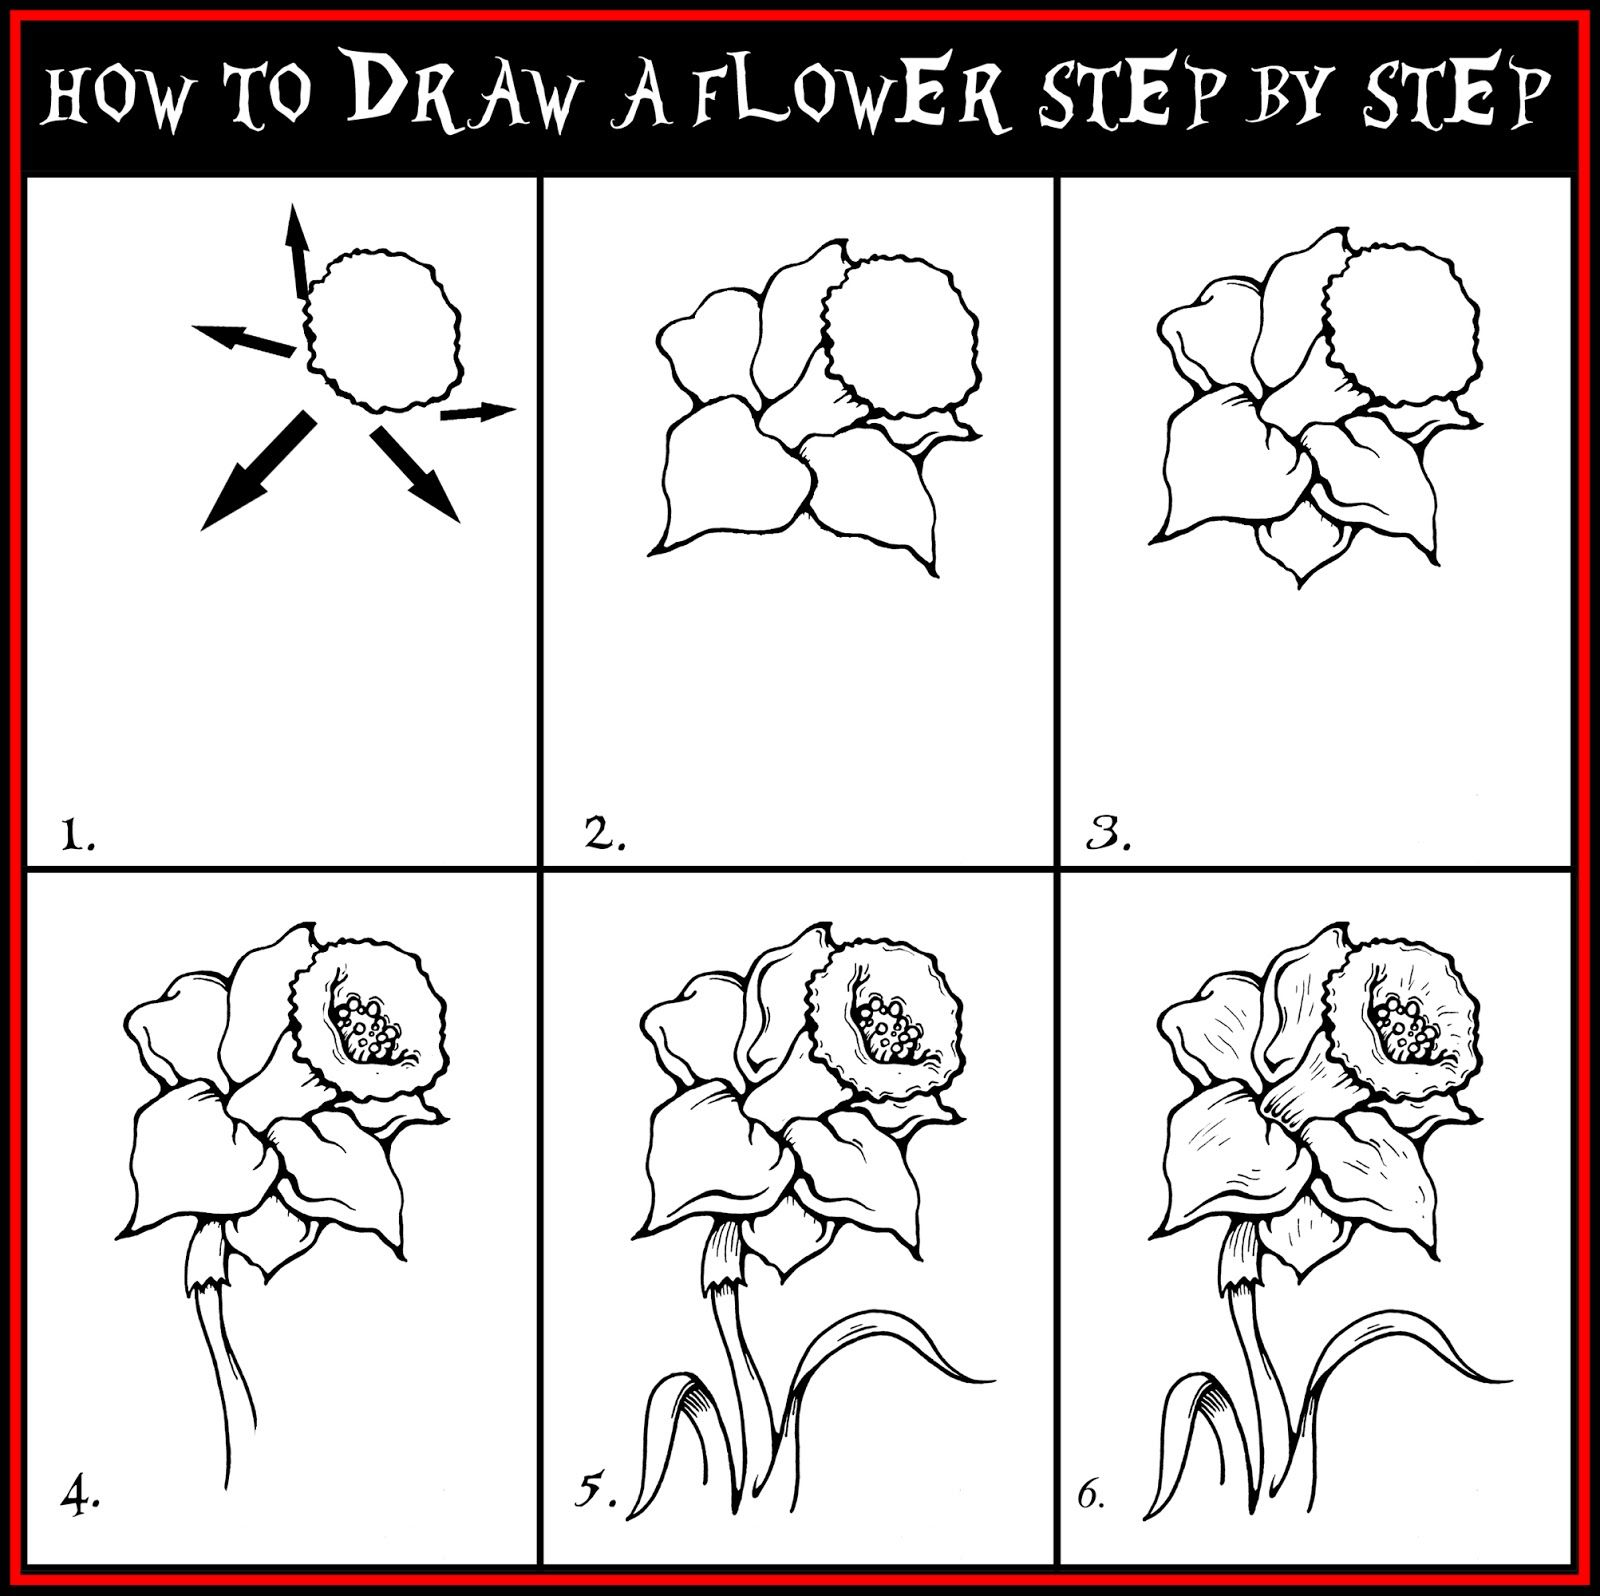 Draw Roses Step By Step  Daryl Hobson Artwork: How To Draw A Flower Step